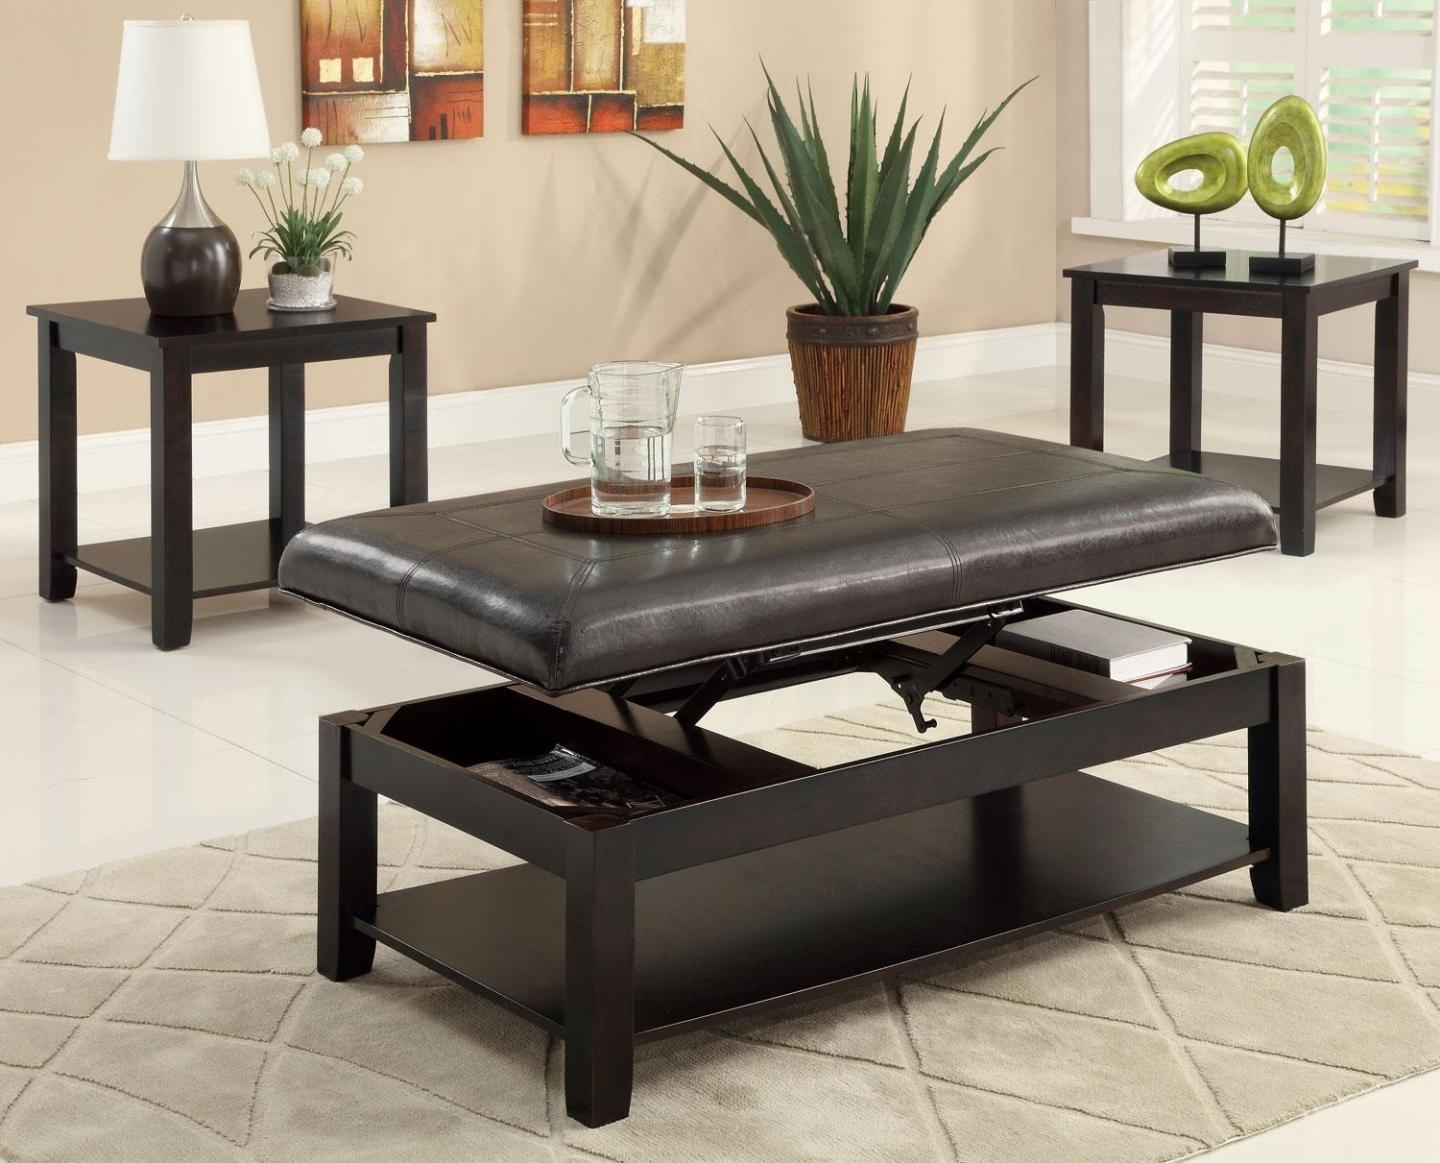 Attractive Lift Top Coffee Table Black With Smart Lift Top Coffee Intended For Smart Glass Top Coffee Tables (View 4 of 30)